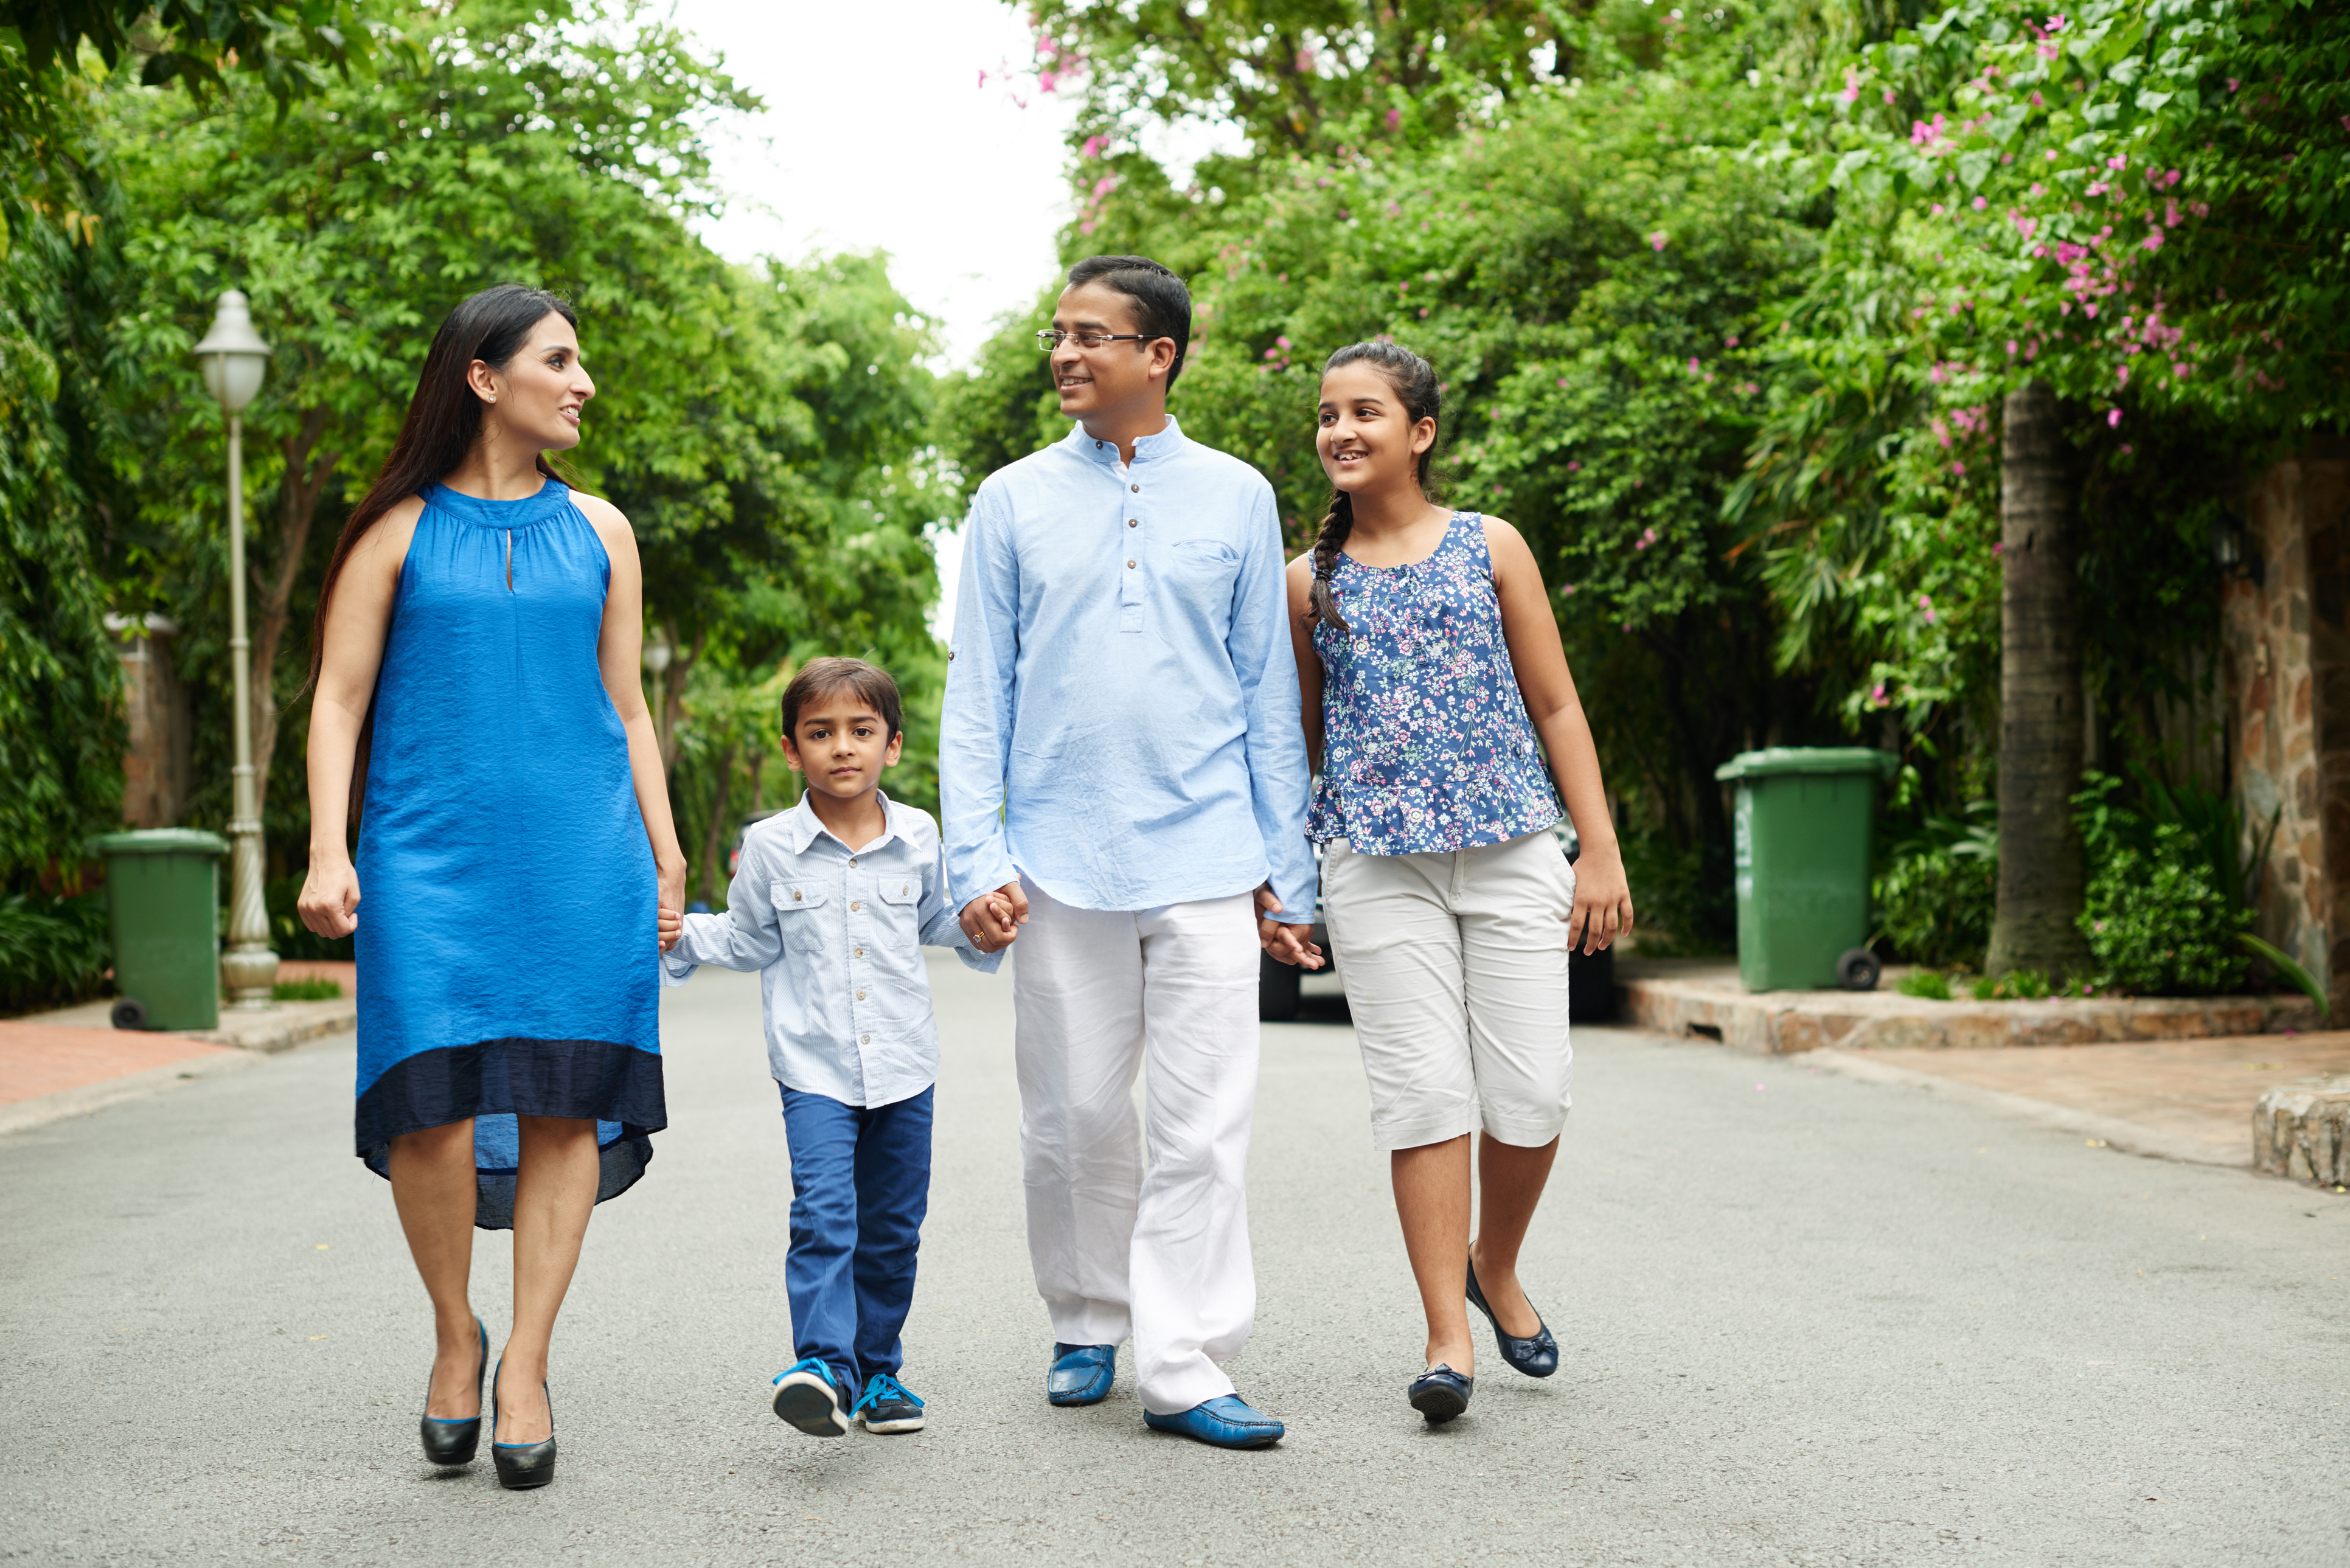 Preparing for Summer Break: How to Have an Amazing Time as a Family